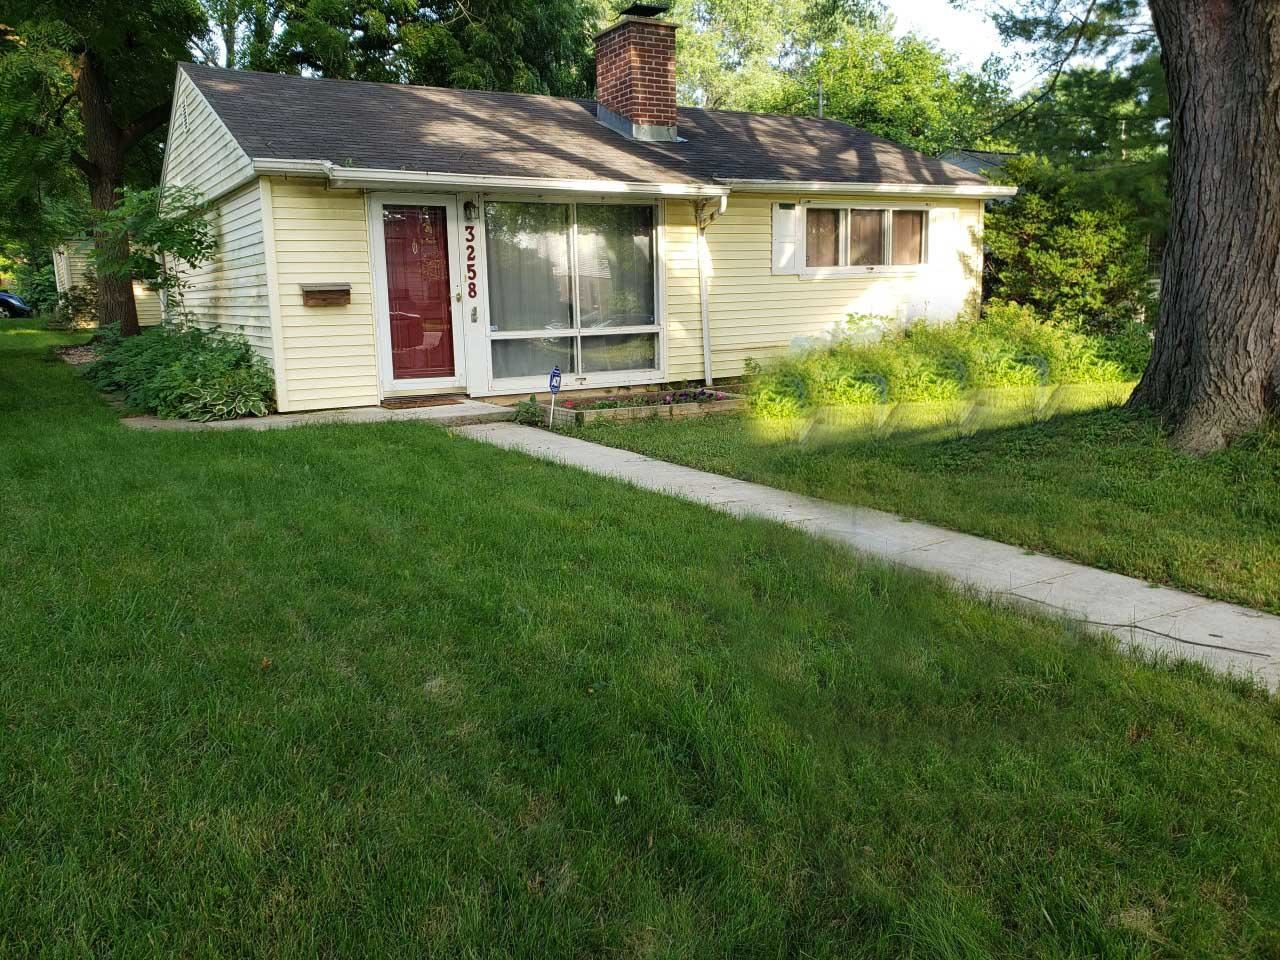 3258 N 84th St, Milwaukee, WI 53222 - #: 1677368